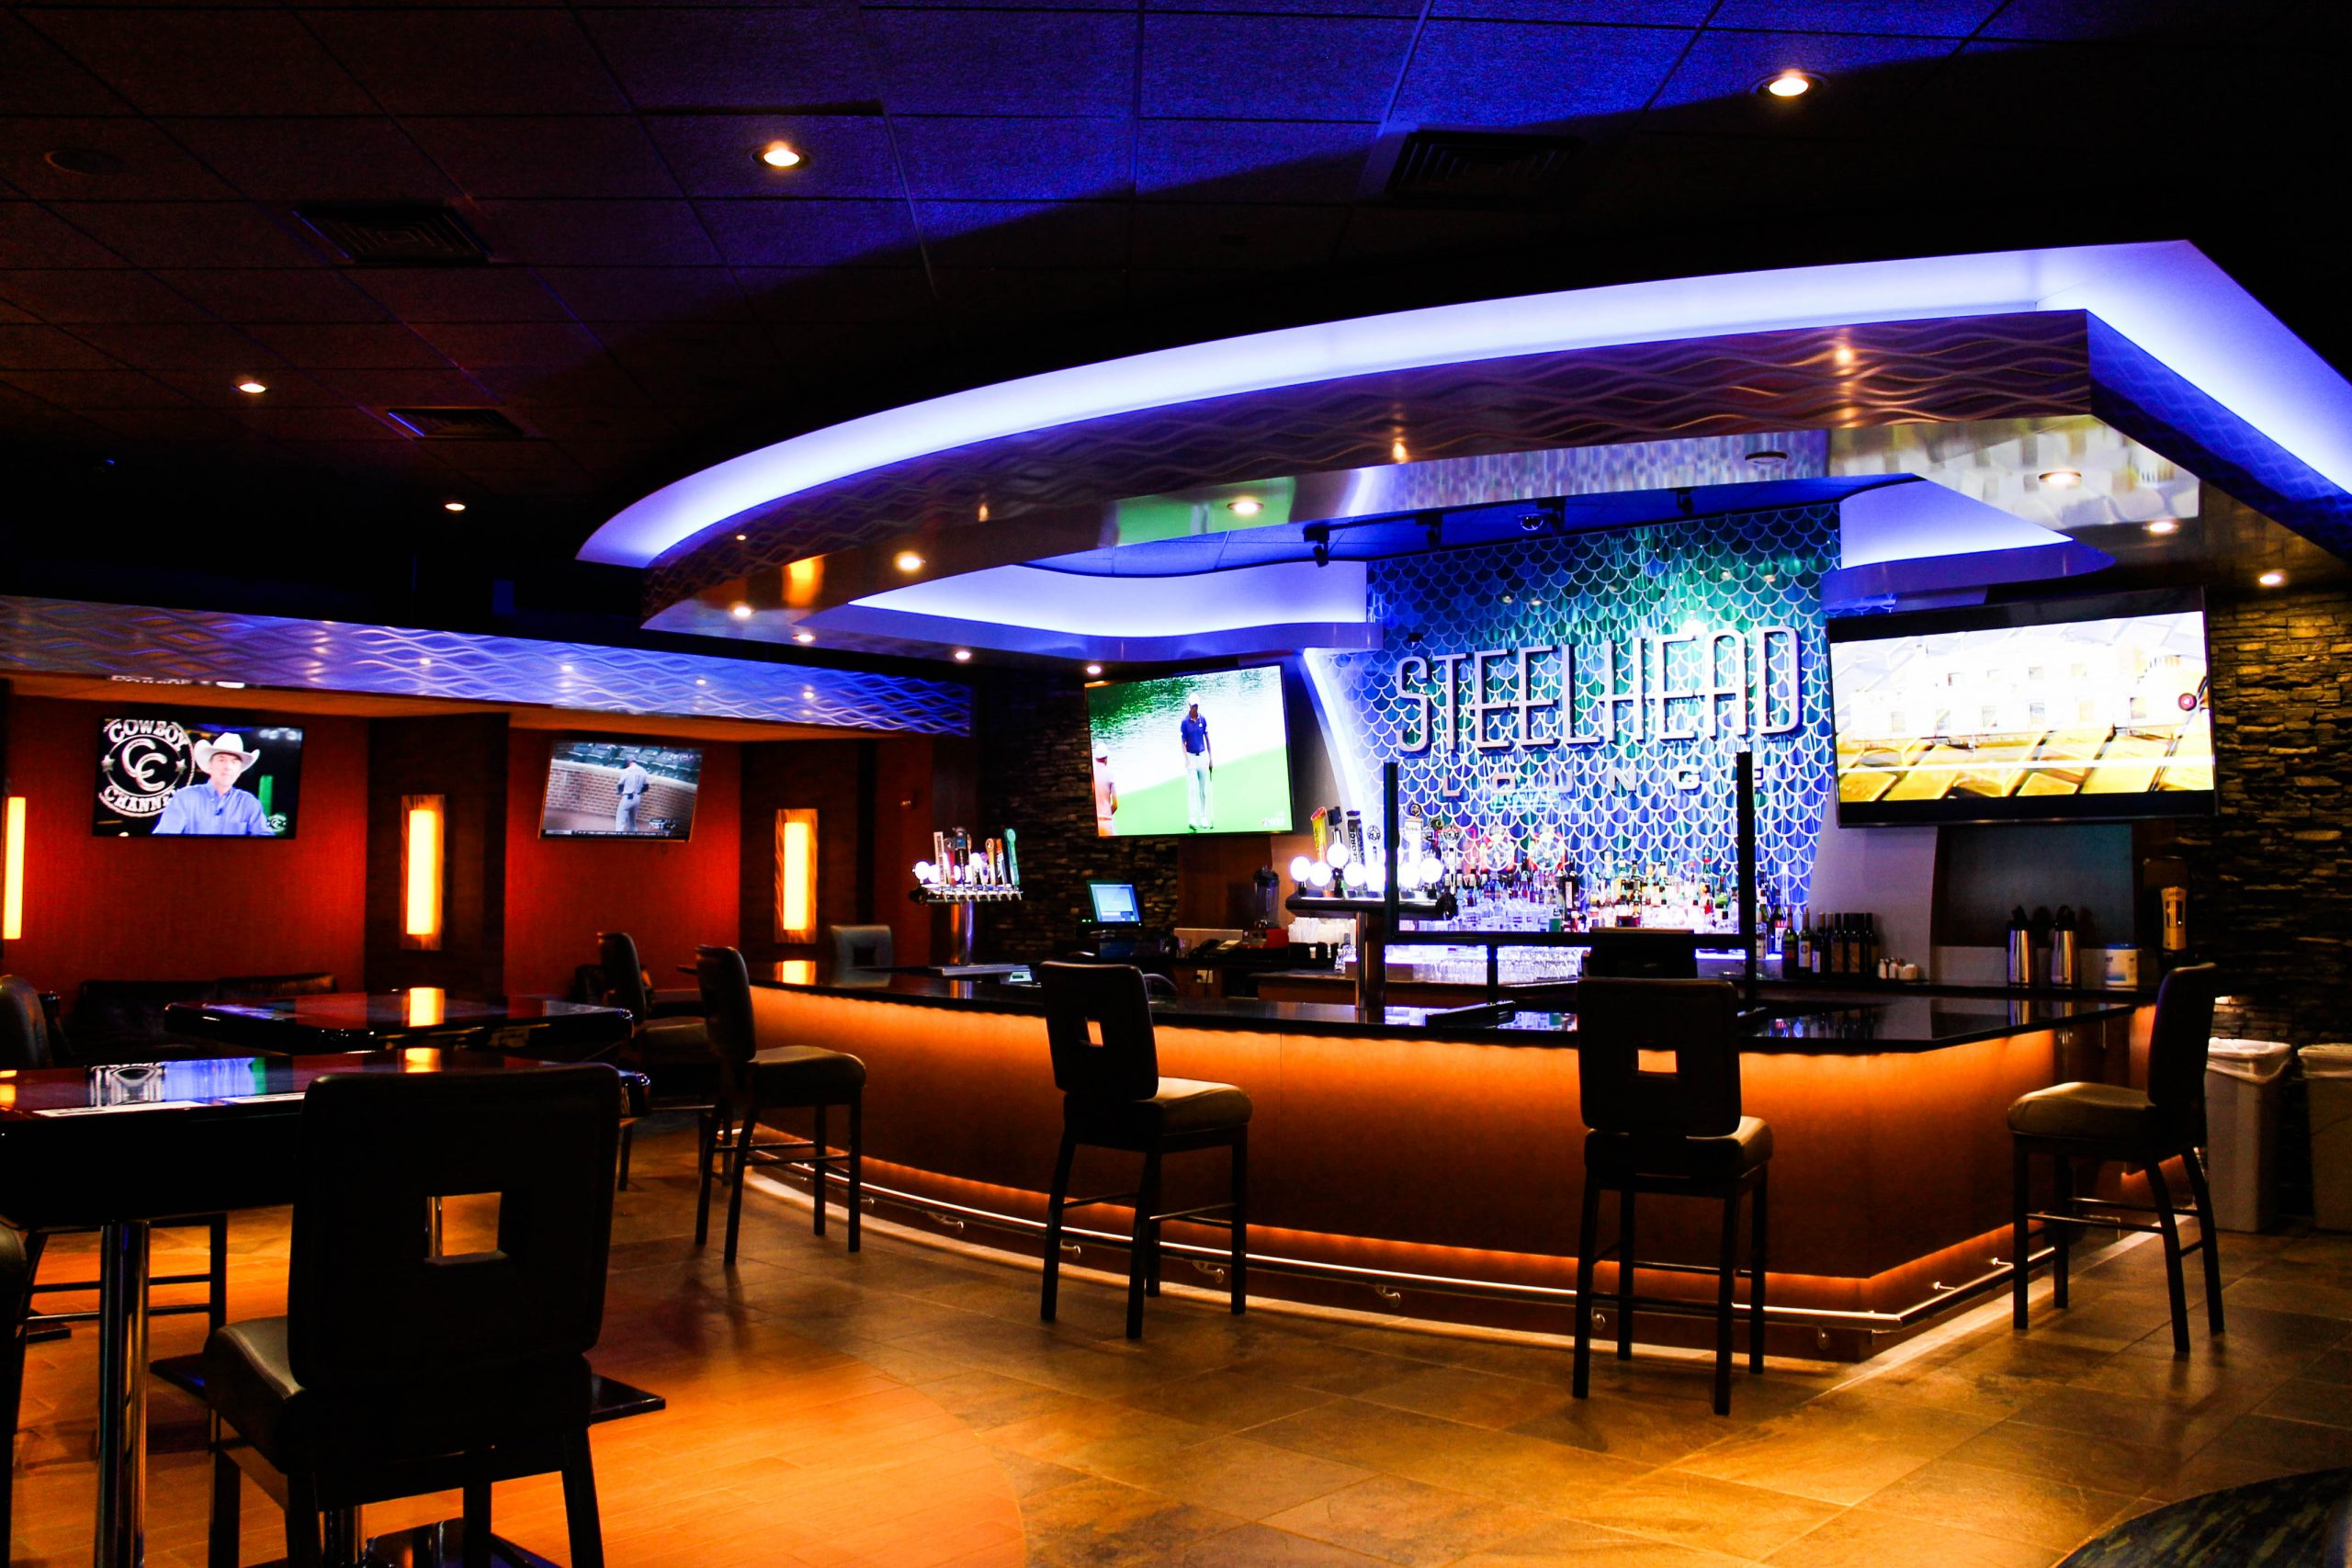 Steelhead Lounge inside Seven Feathers Casino Resort in Canyonville Oregon